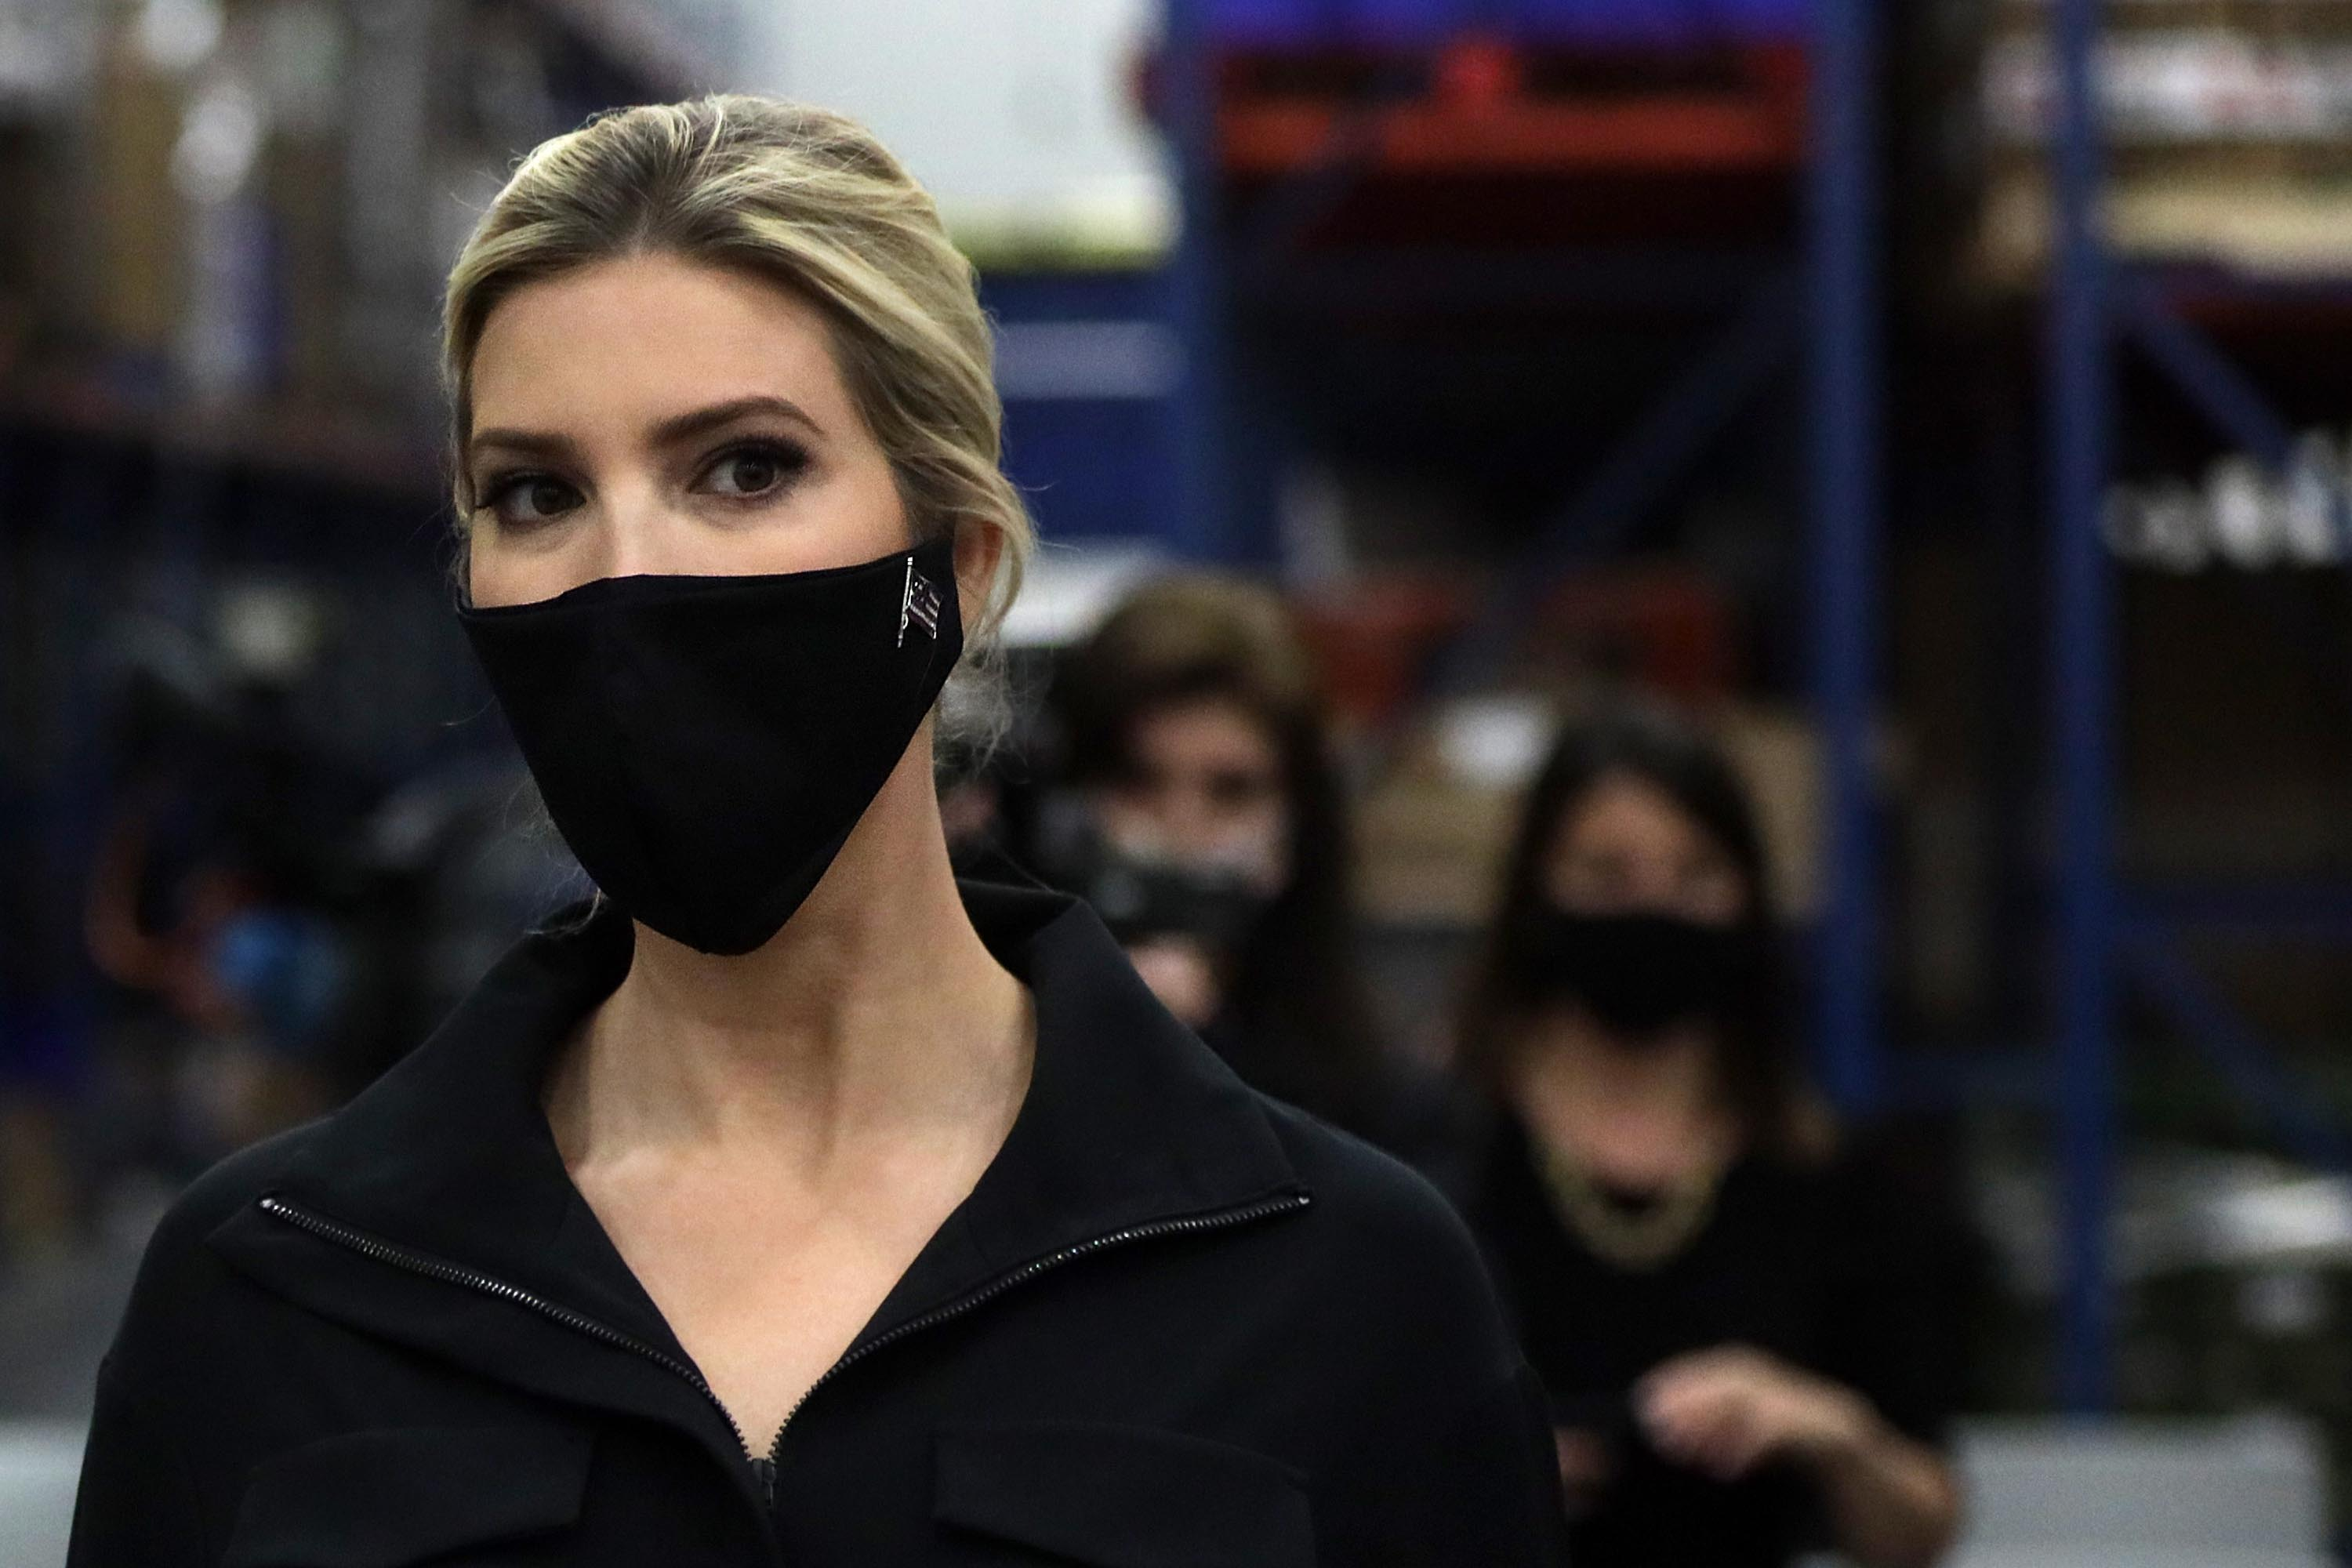 New Ivanka Trump initiative tells out-of-work Americans to 'find something new'